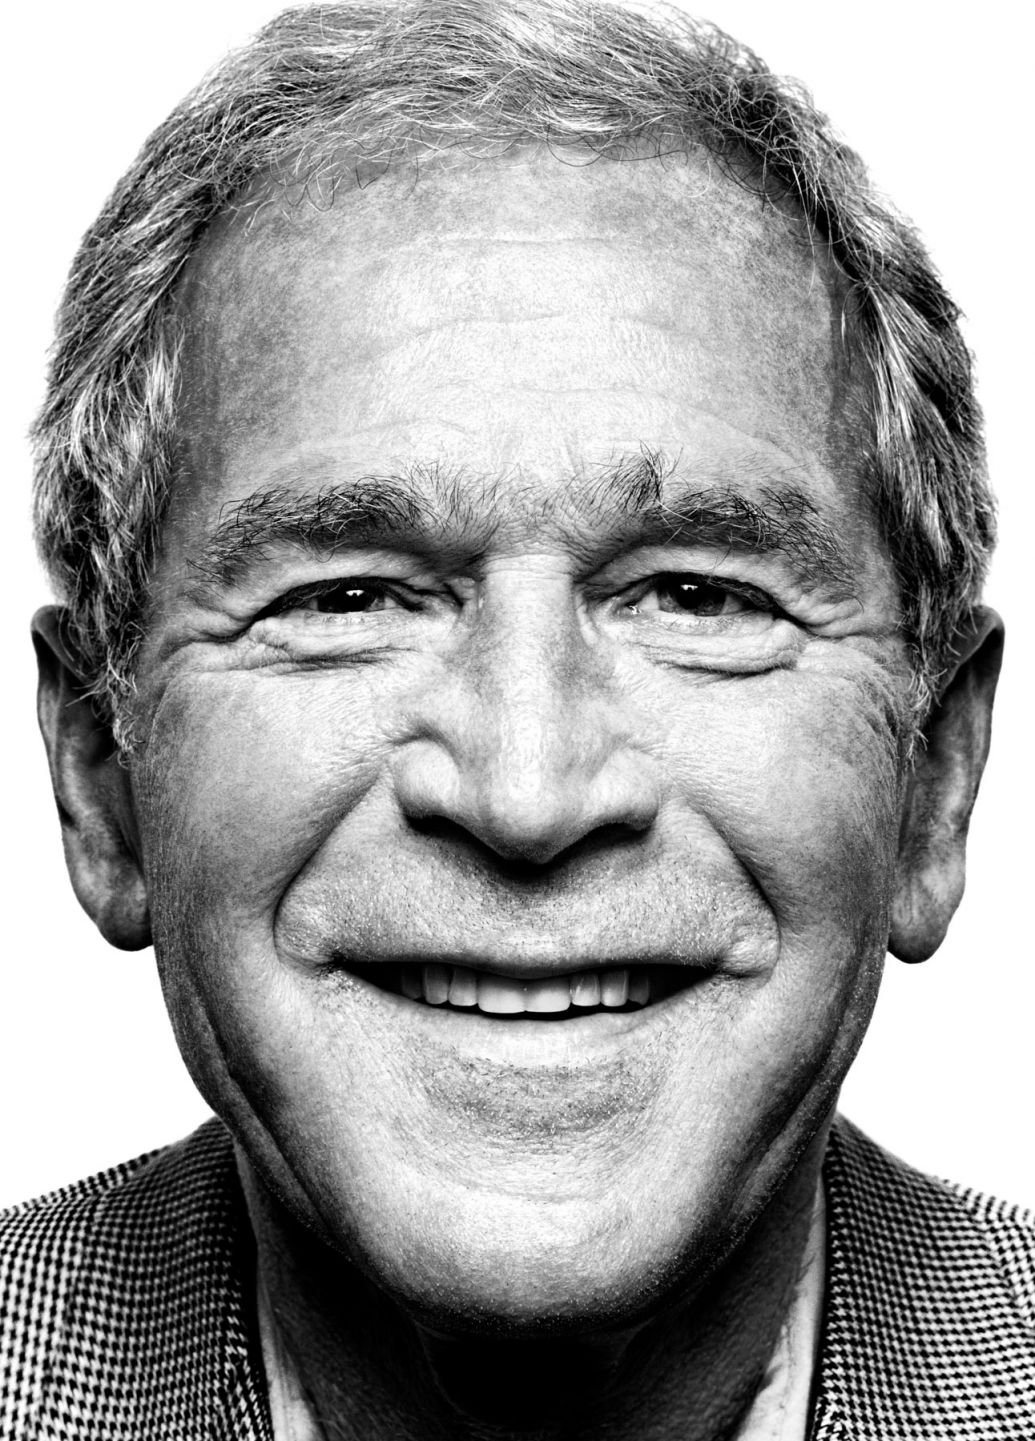 George W Bush portrait photography